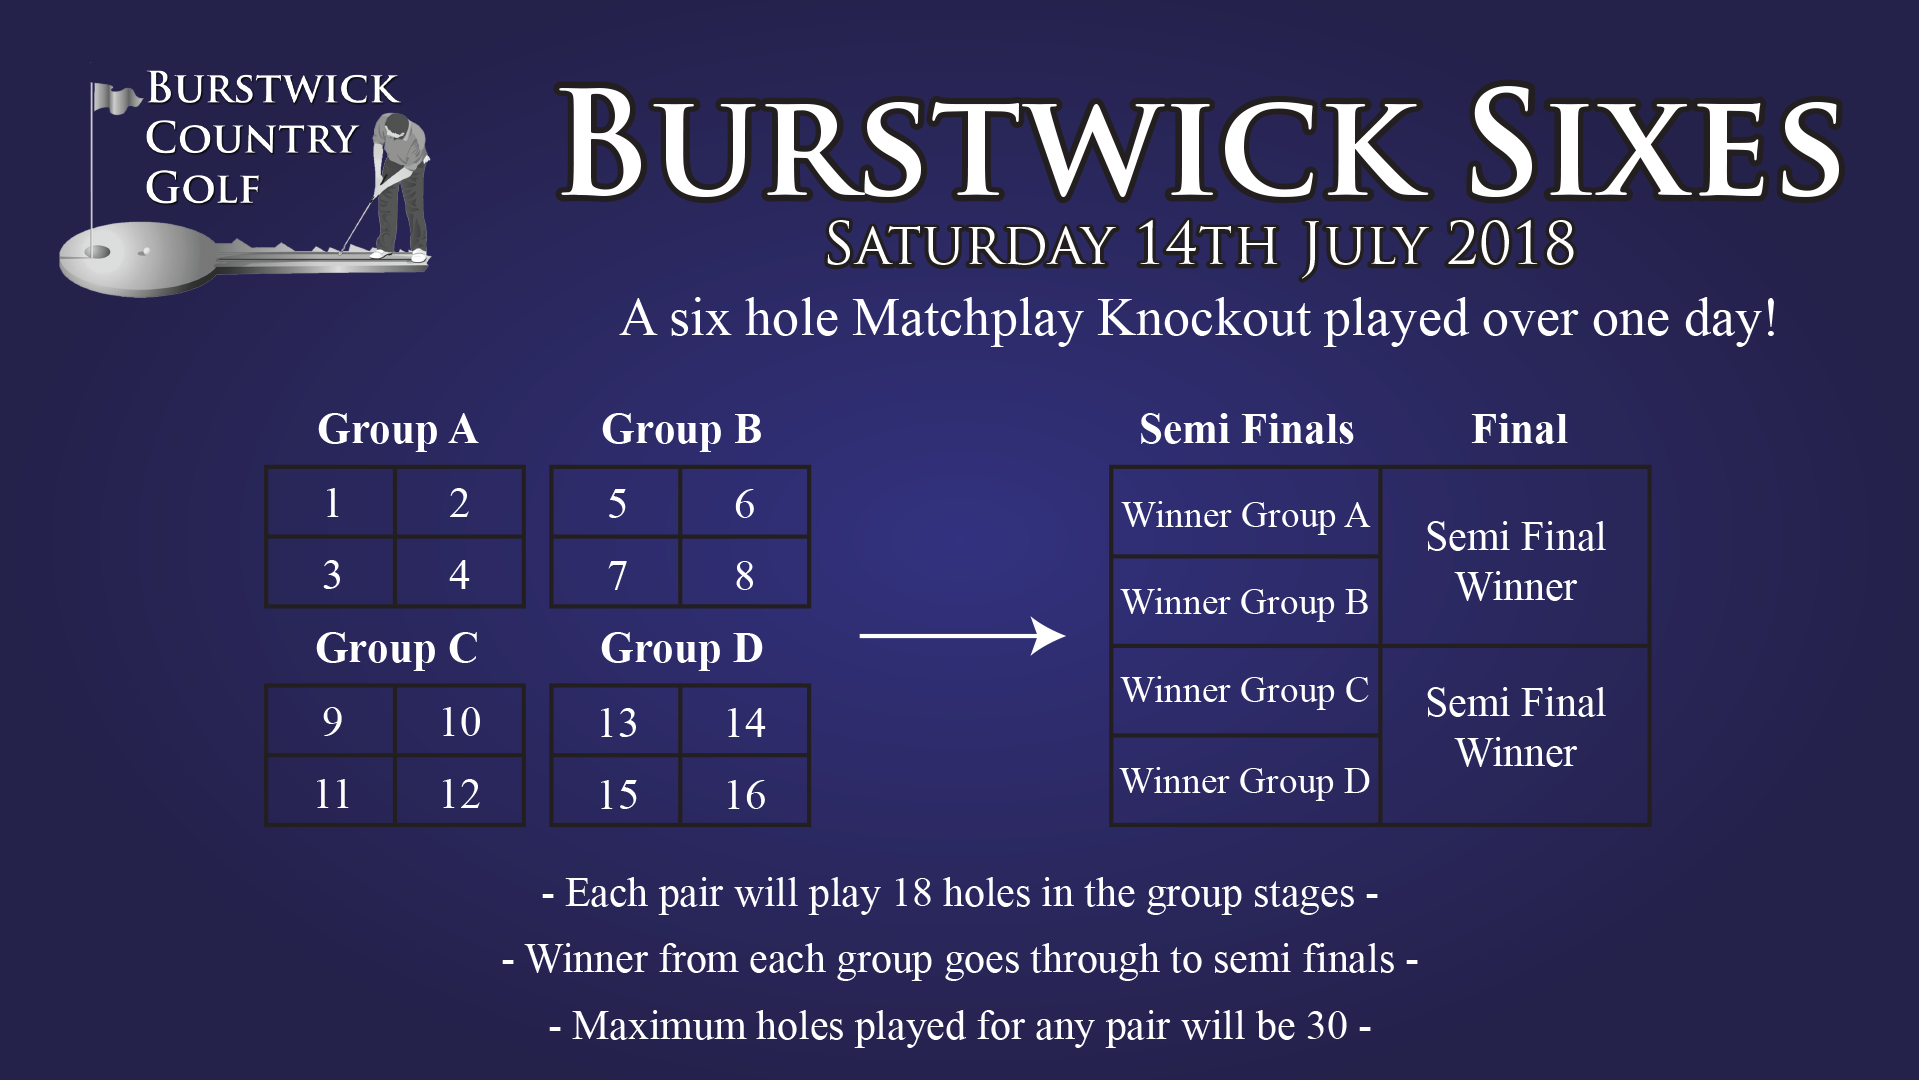 Burstwick Sixes Tournament